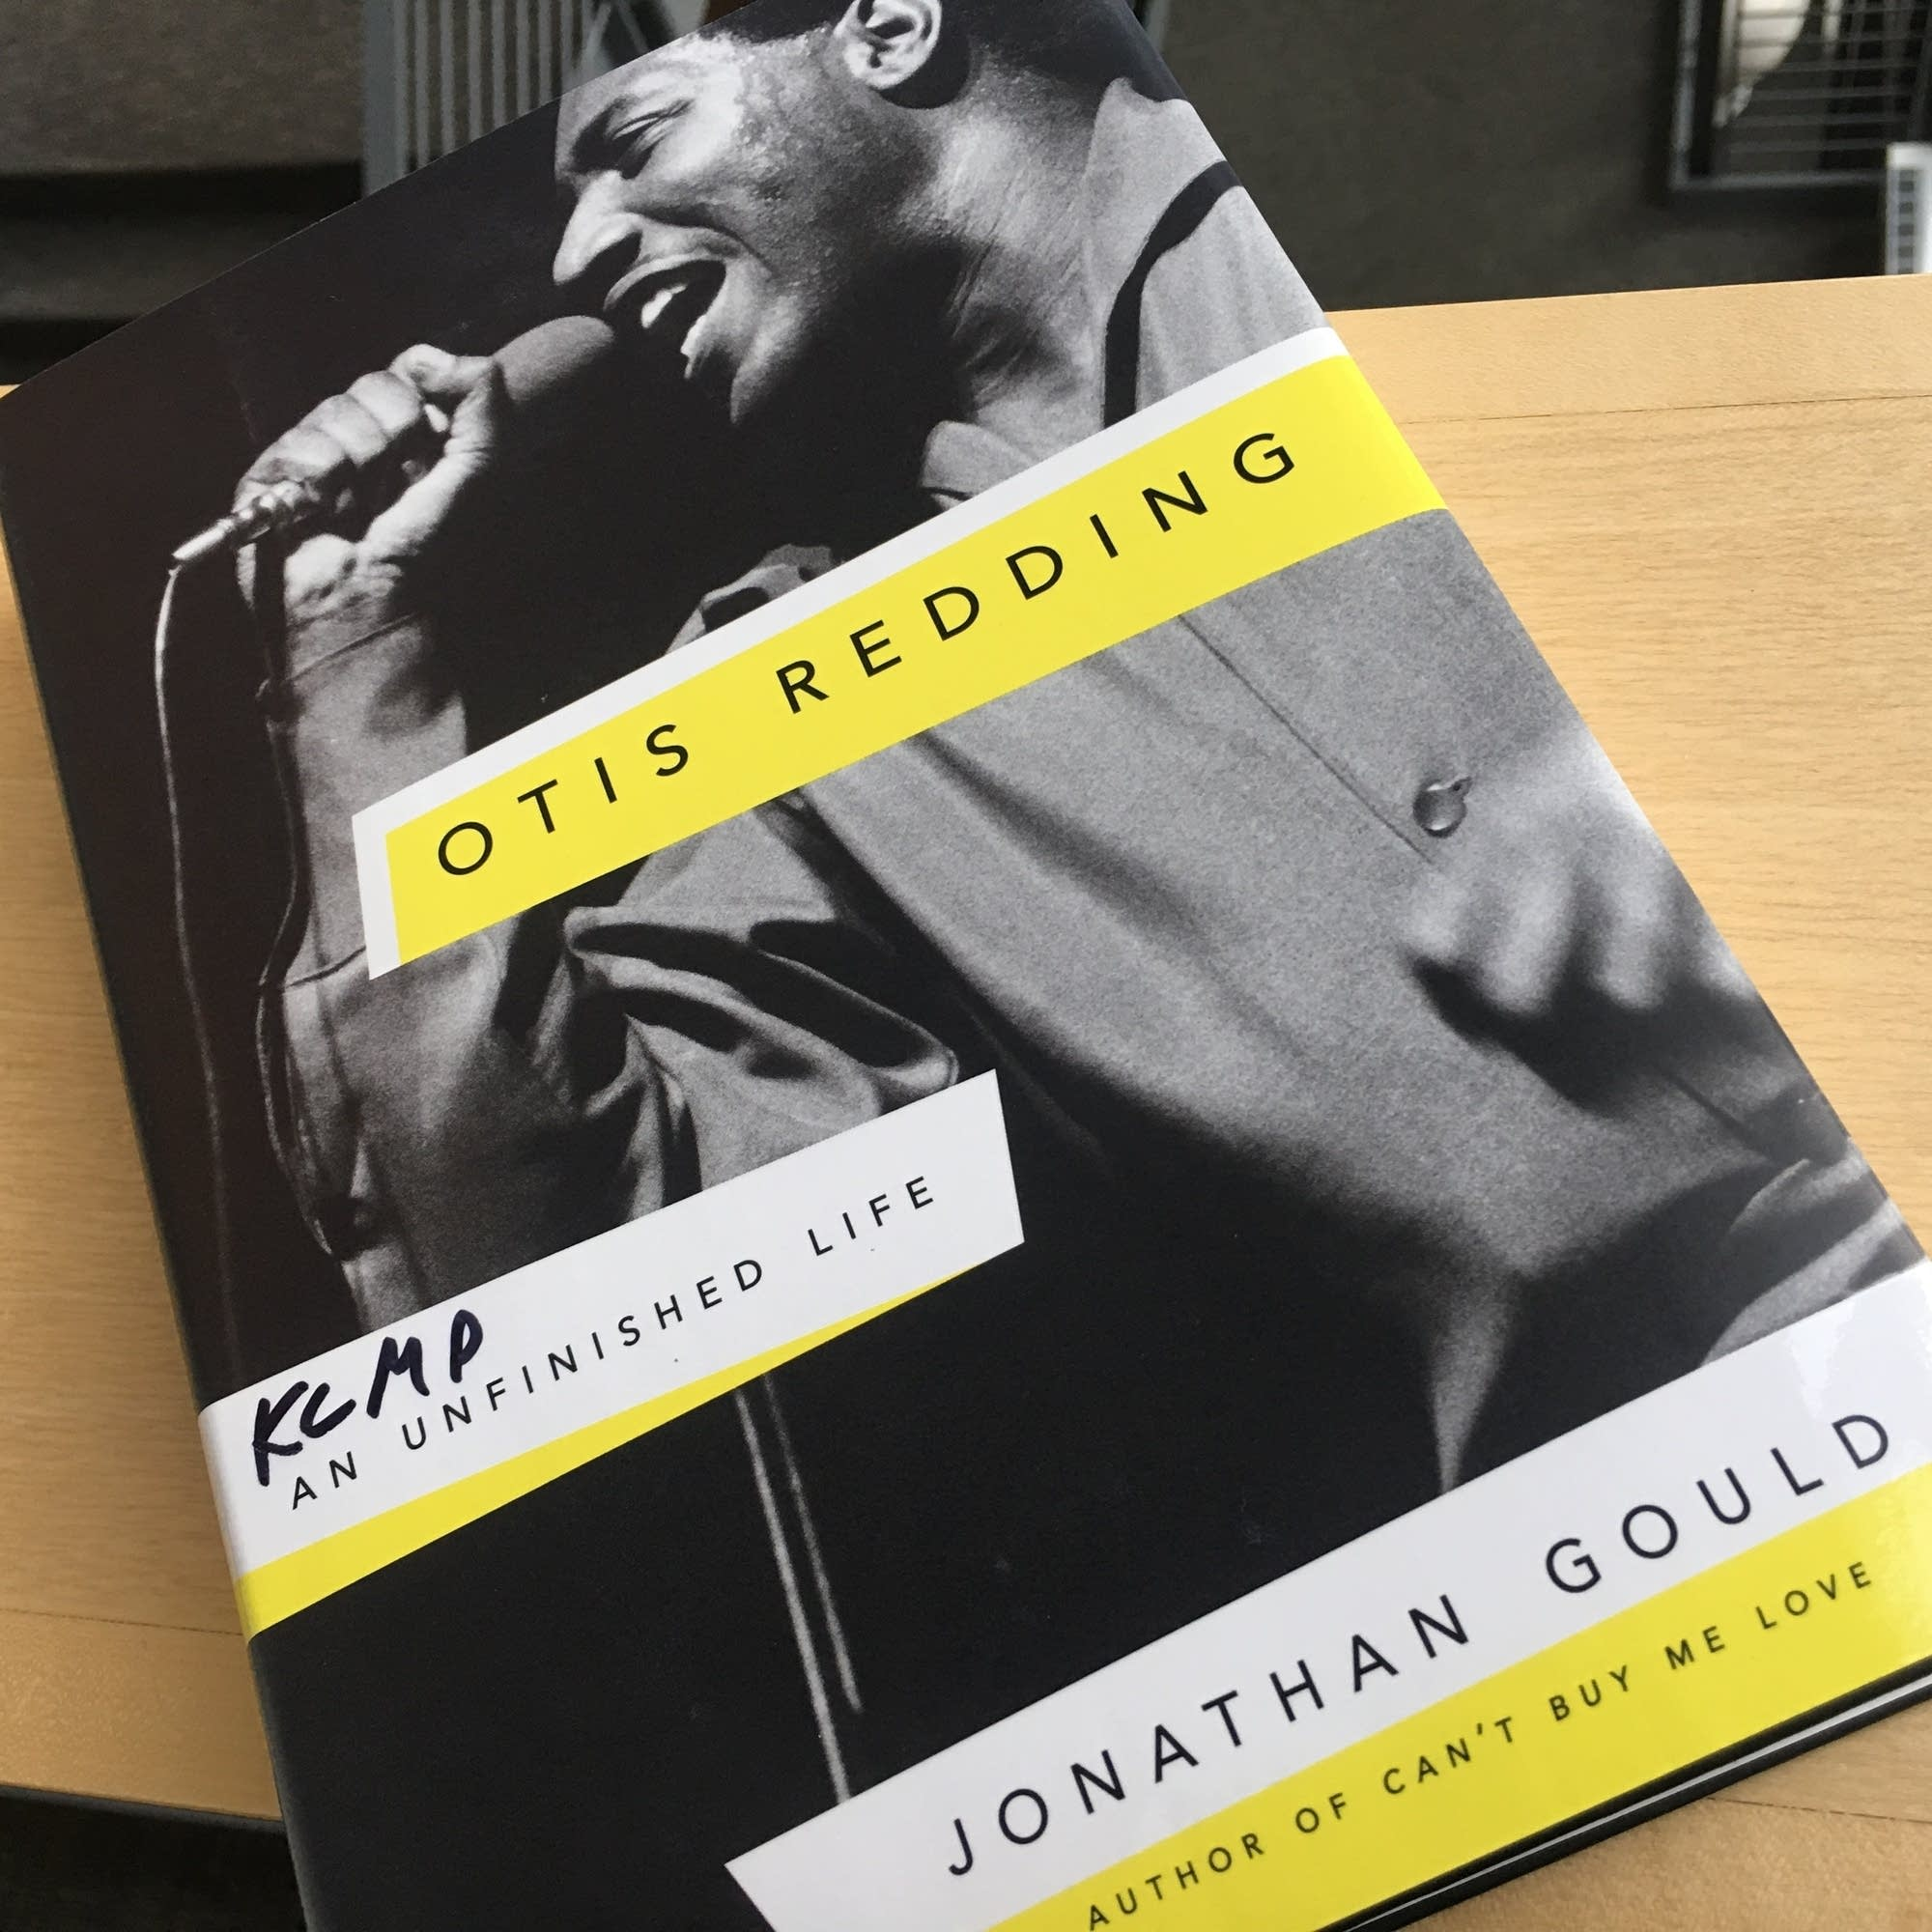 Jonathan Gould's 'Otis Redding: An Unfinished Life.'